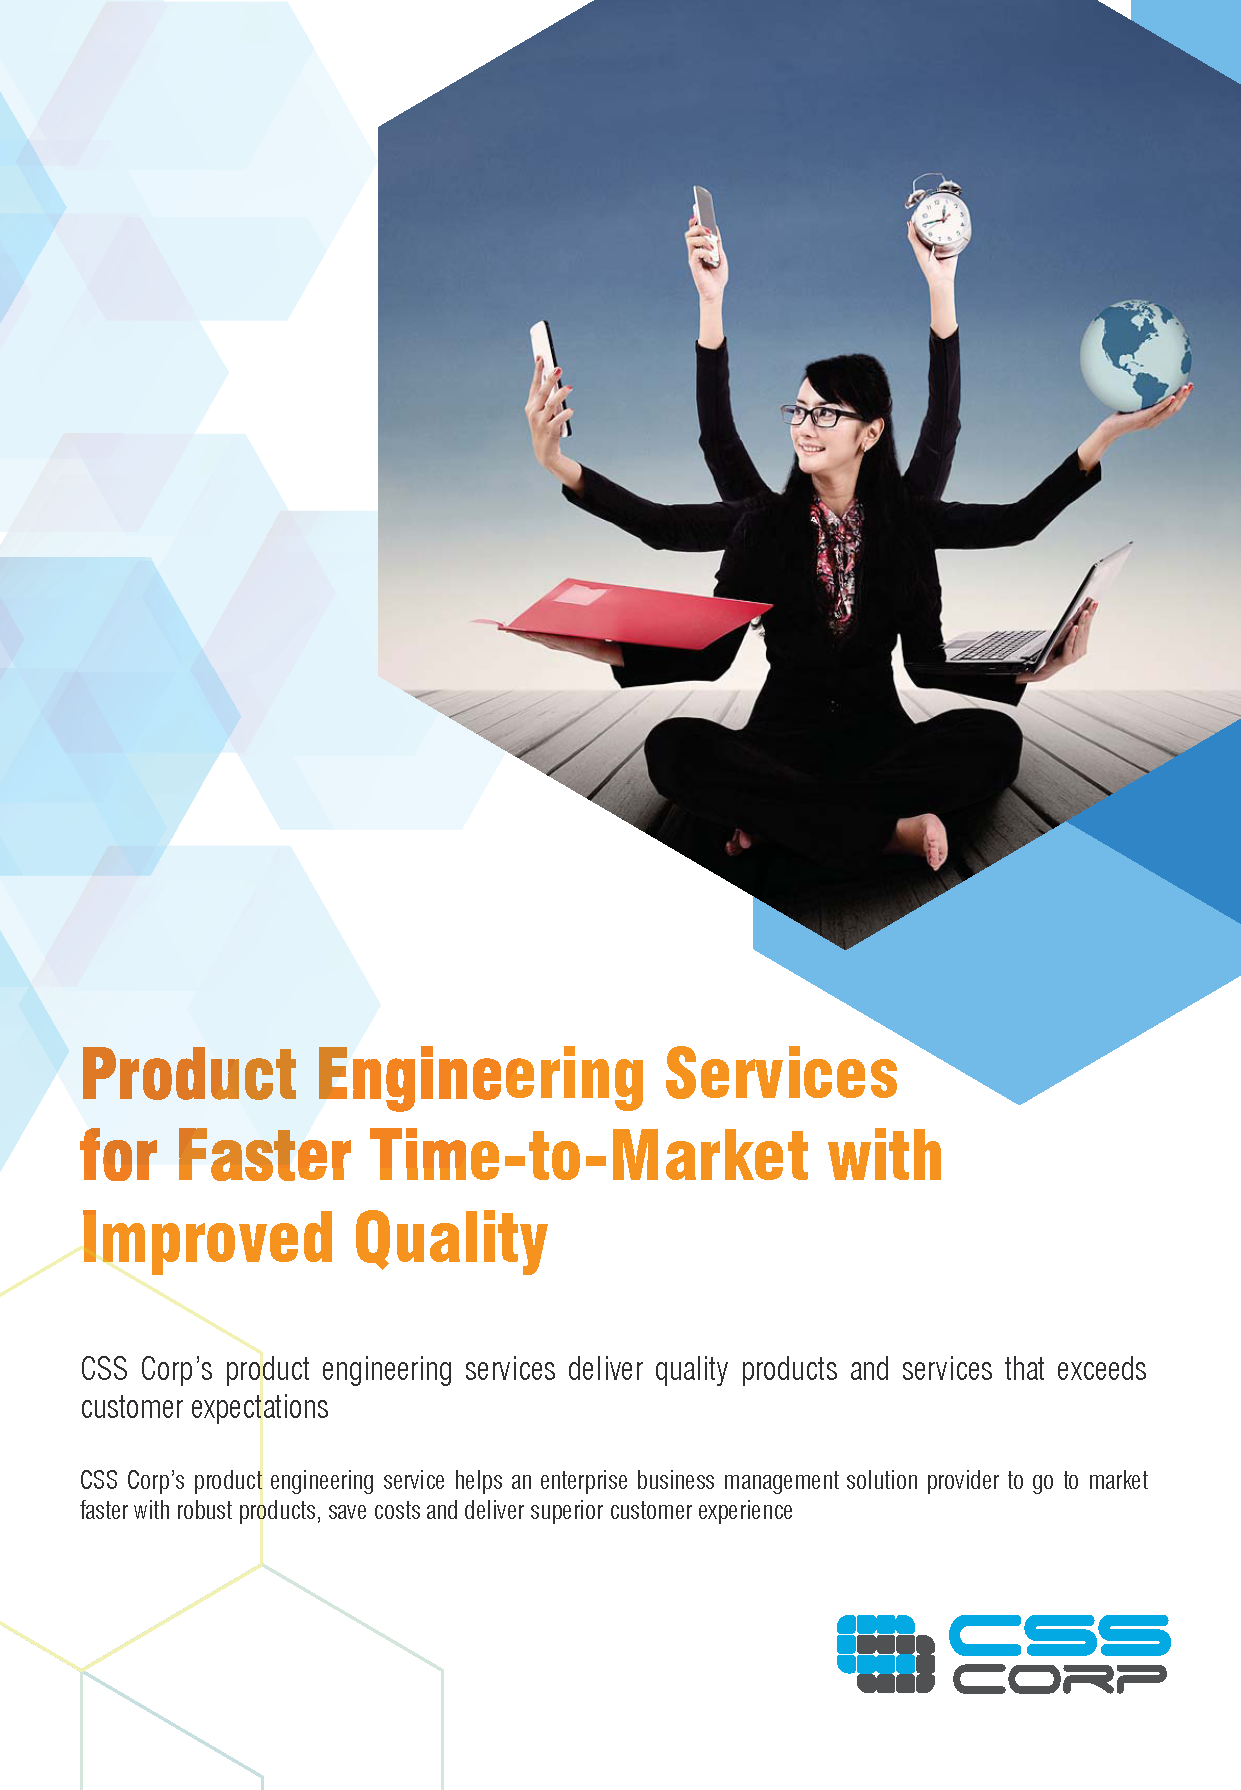 Product Engineering Services for Faster Time-to-Market